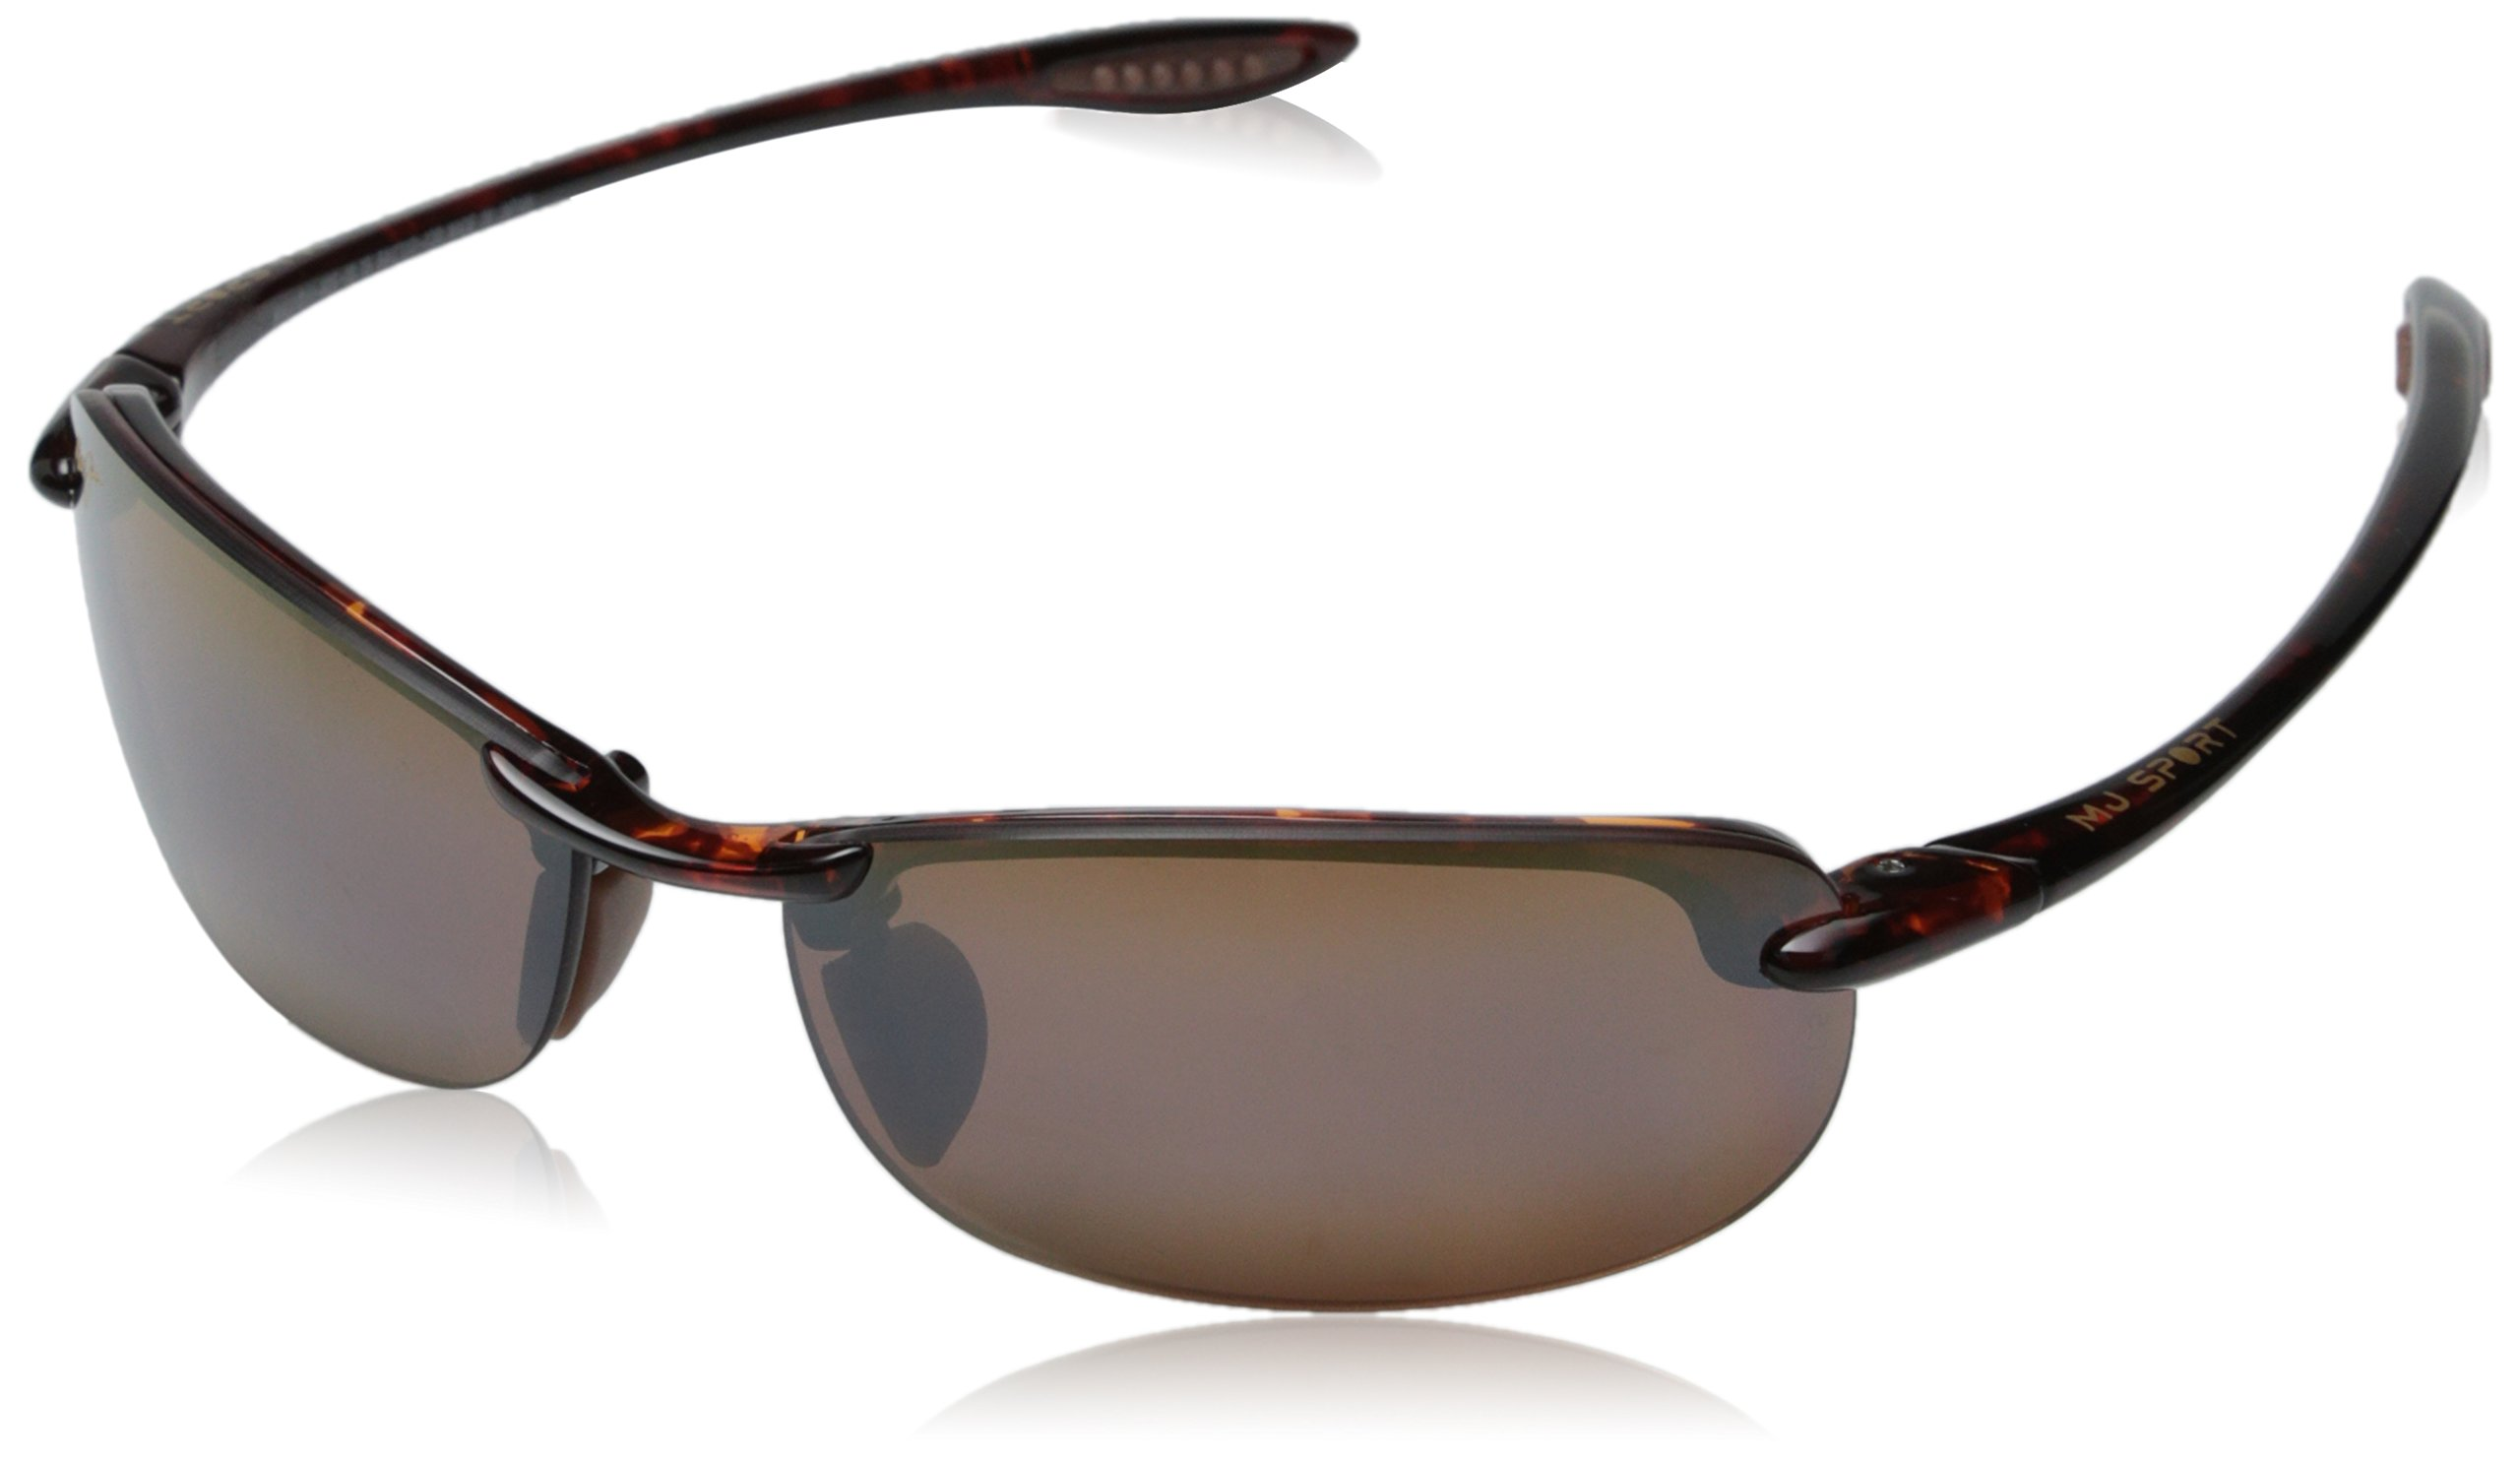 Maui Jim Unisex-Adult Makaha Reader H805-1015 Polarized Rimless Sunglasses, Tortoise, 64 mm by Maui Jim